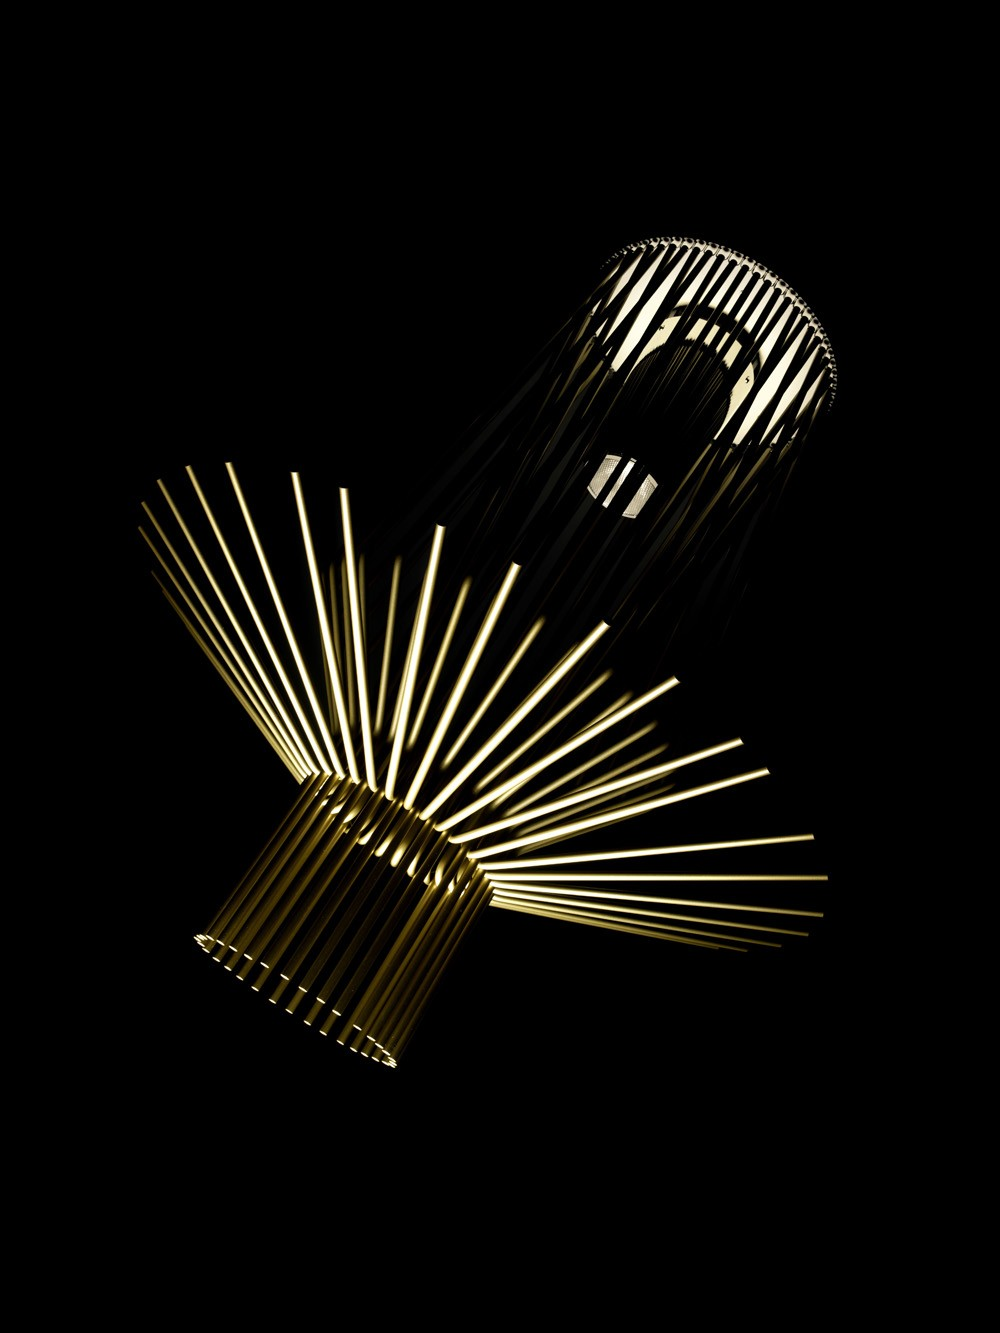 foscarini-allegretto-assai-suspension-lamp-2_1.jpg